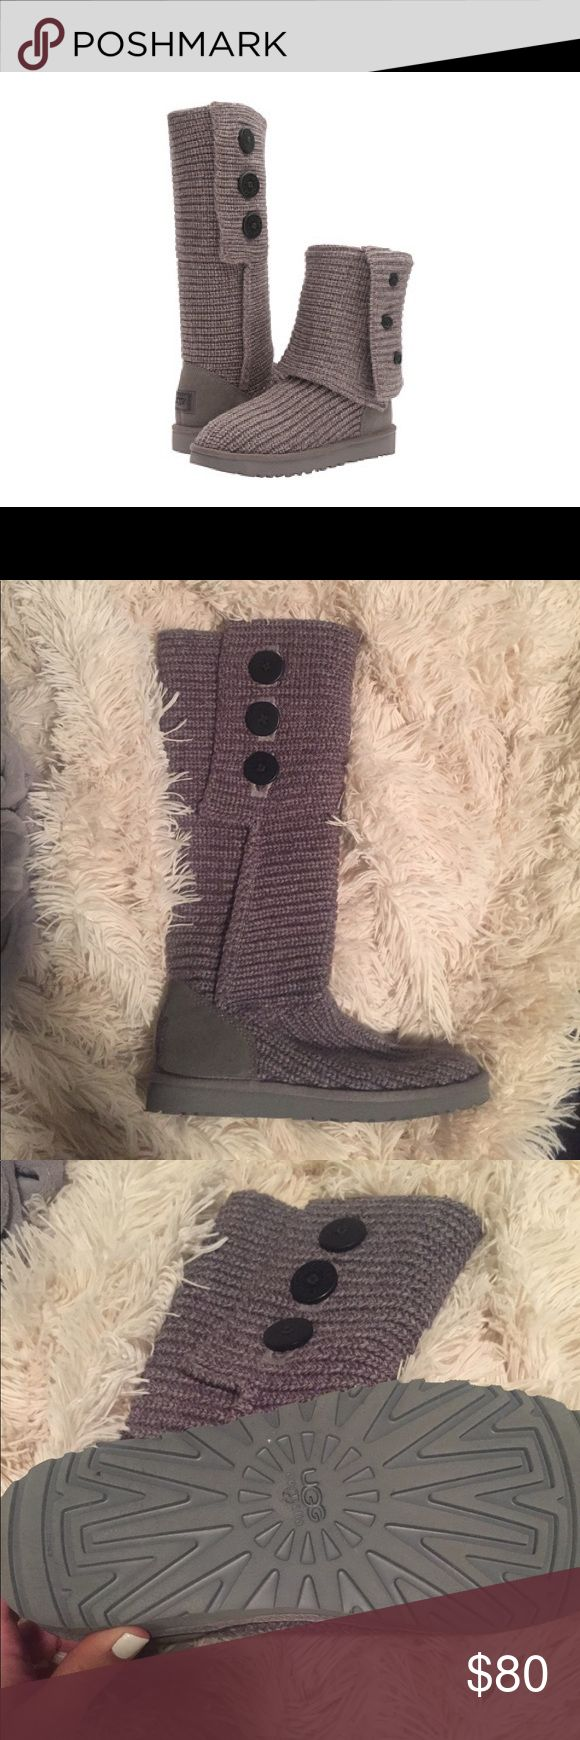 UGG Classic Cardy Boots Classic Cardy boots in gray, women's size 7.  These boots have only been worn a few times. UGG Shoes Winter & Rain Boots